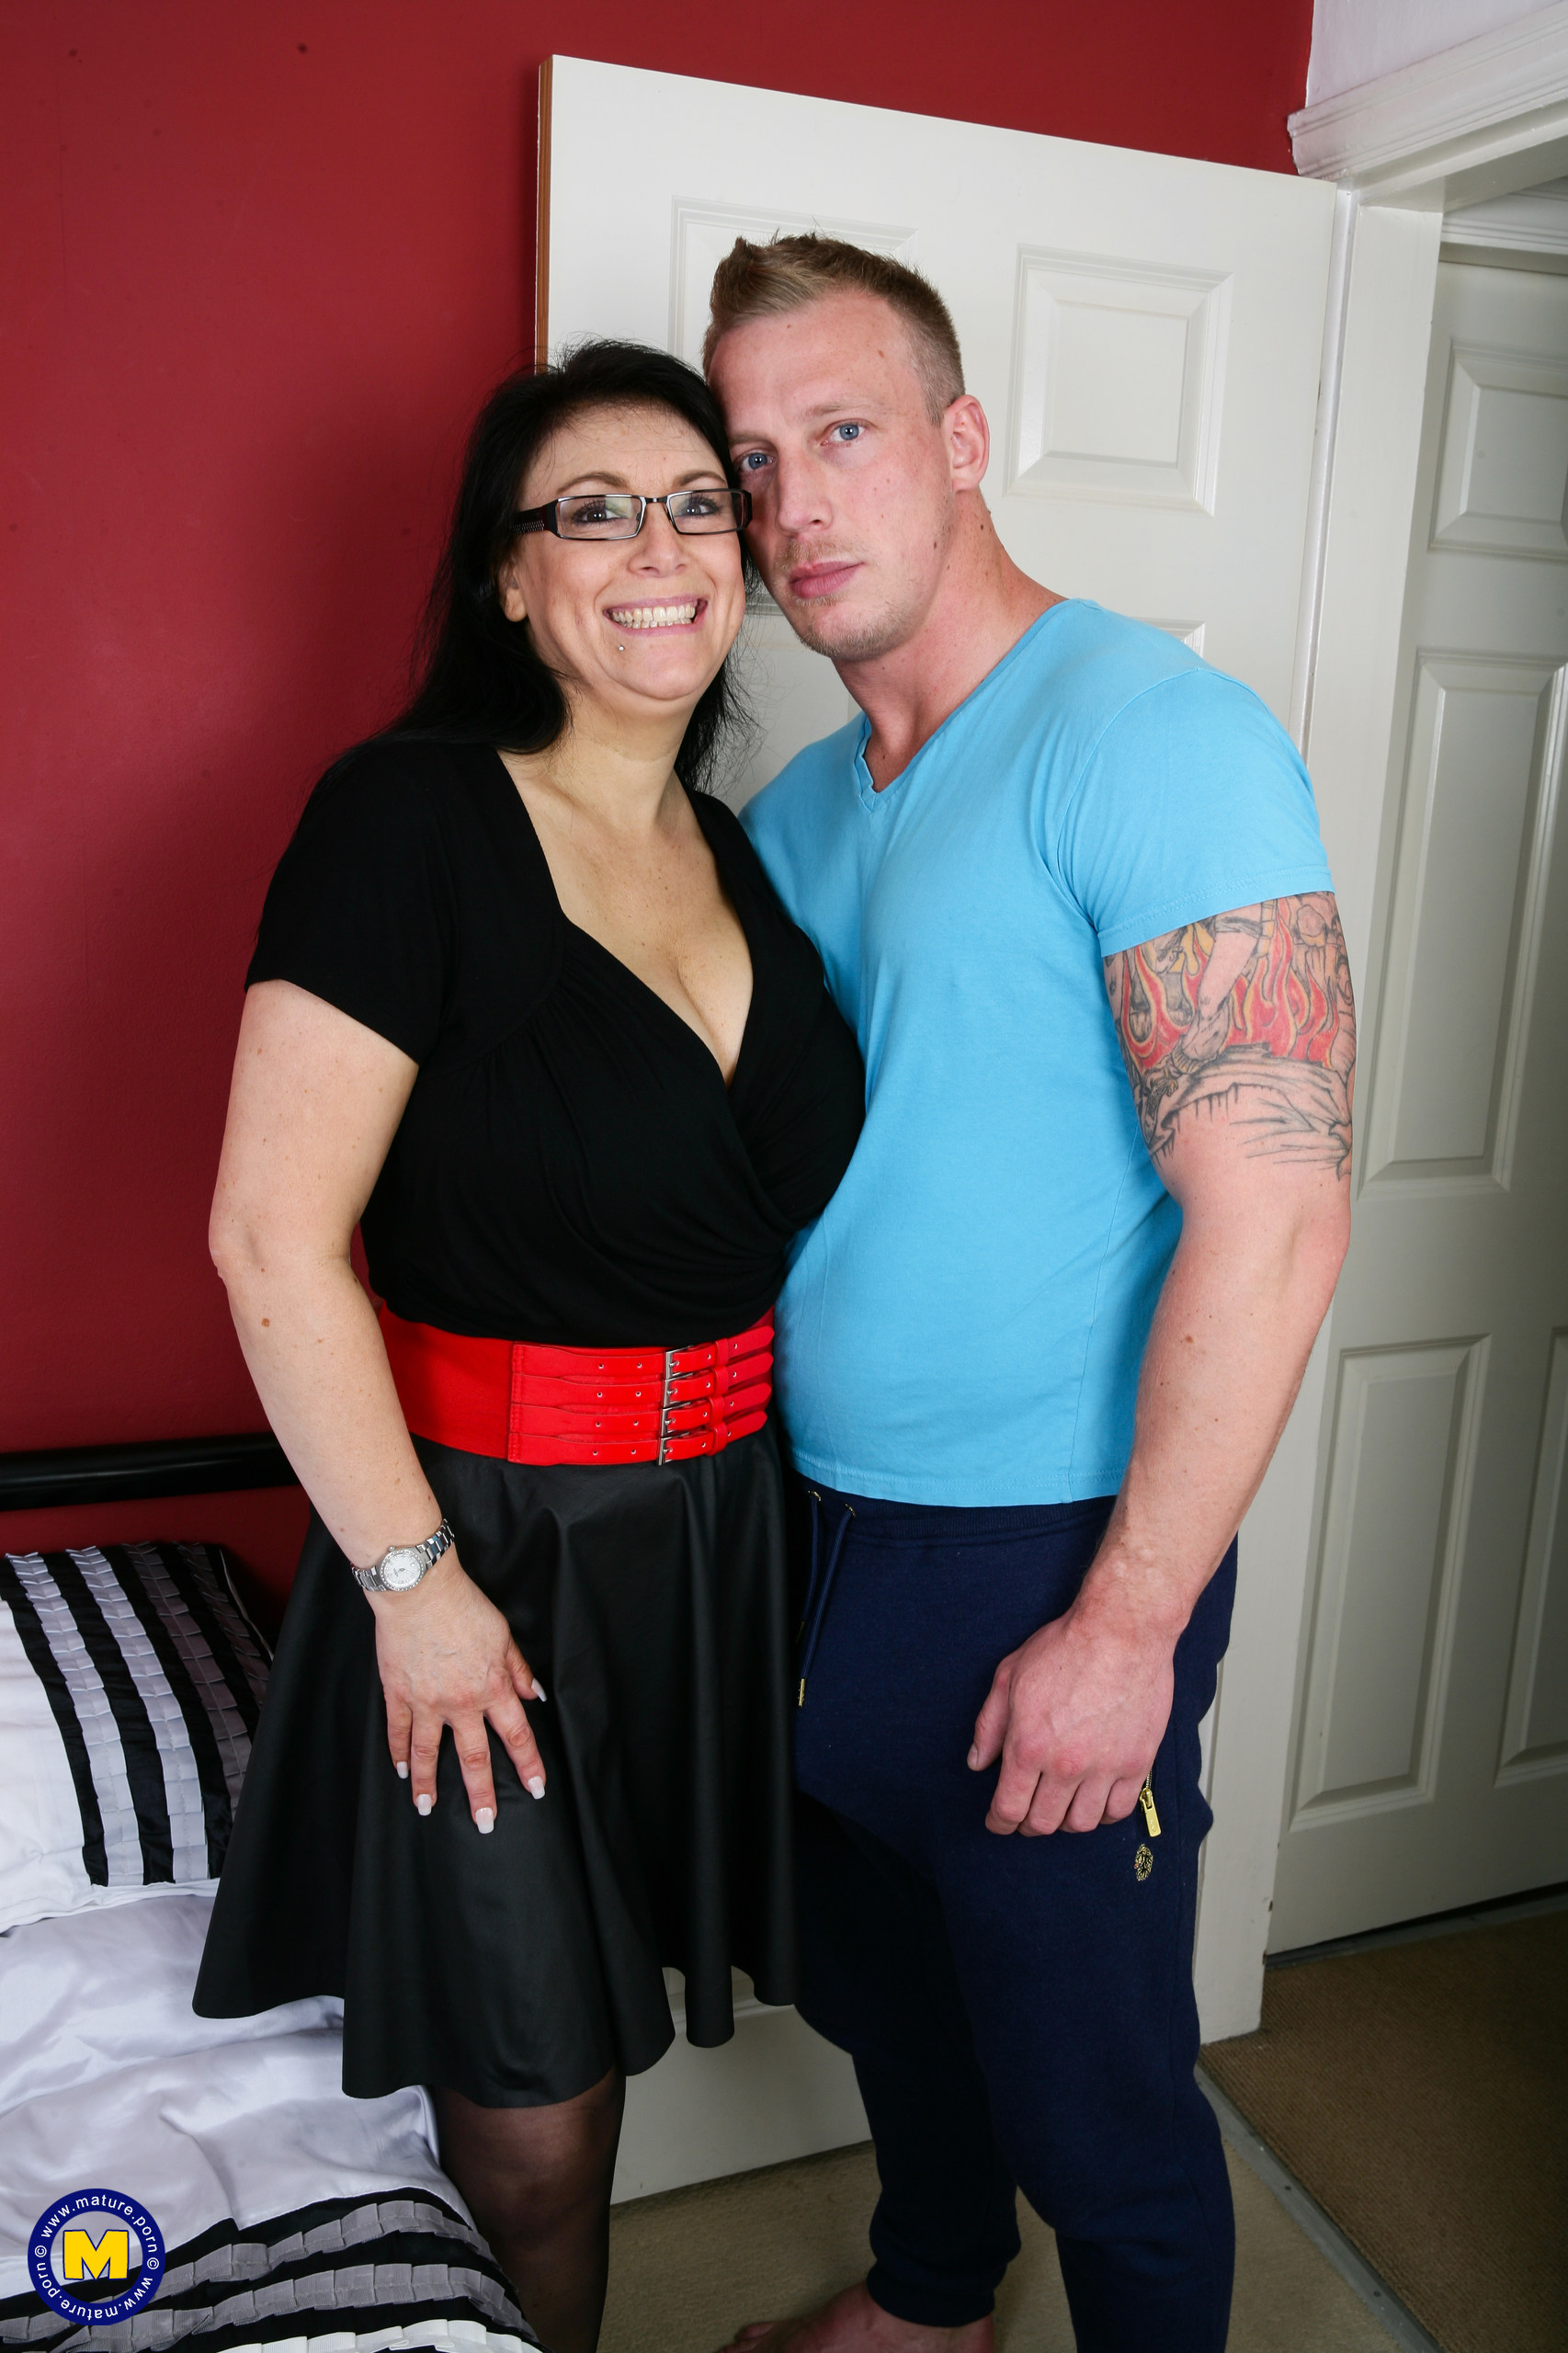 Huge jugged British housewife fooling around with the man next door